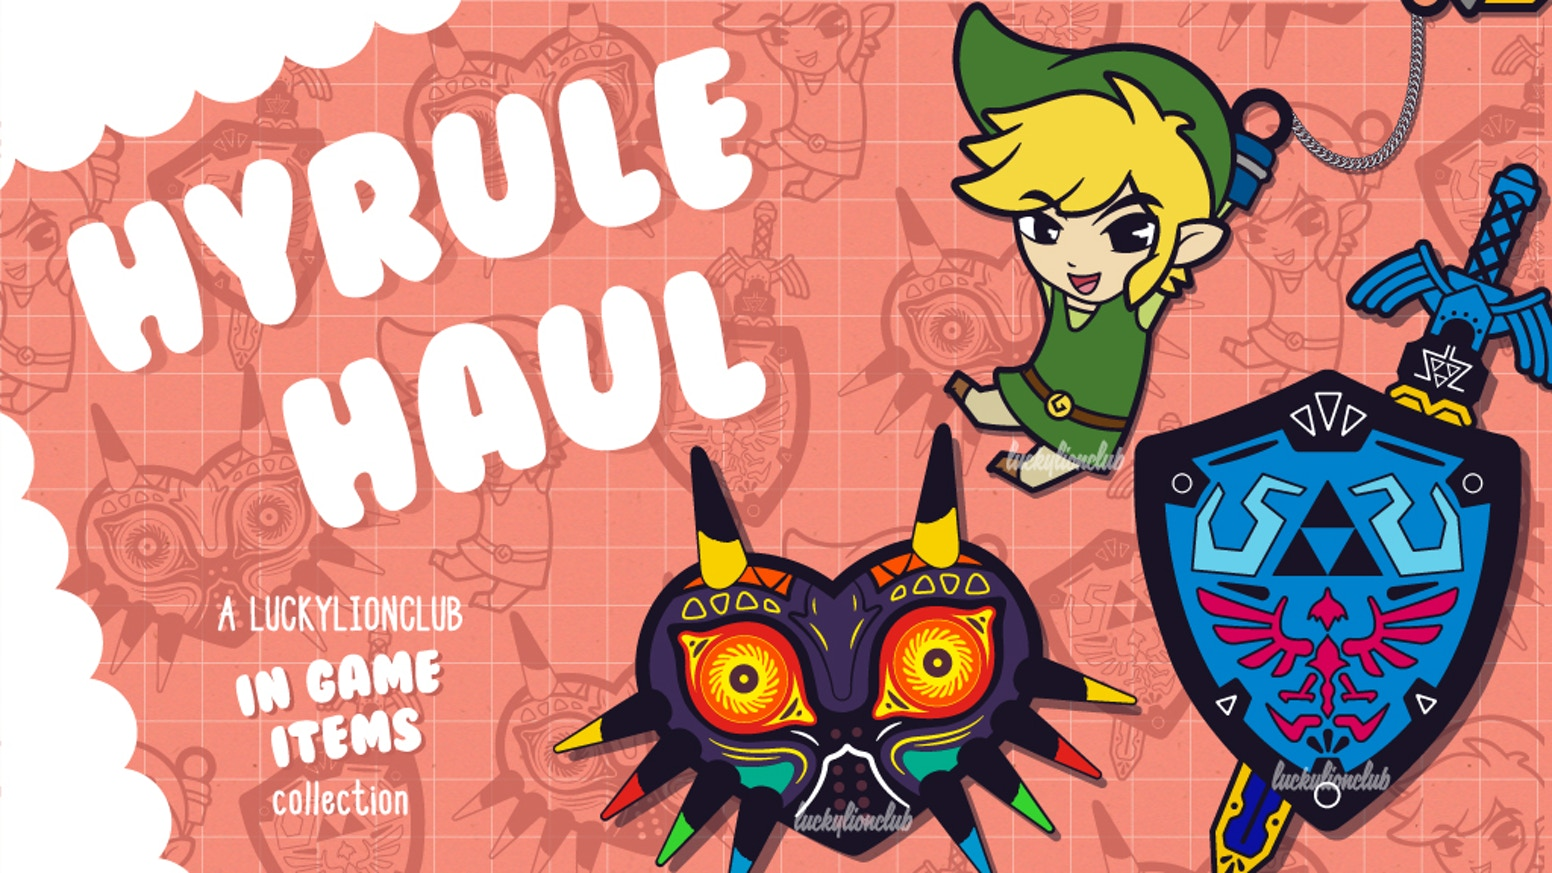 Hyrule Haul Kawaii Enamel Pins With Rogue Retro Pokemon By Emma